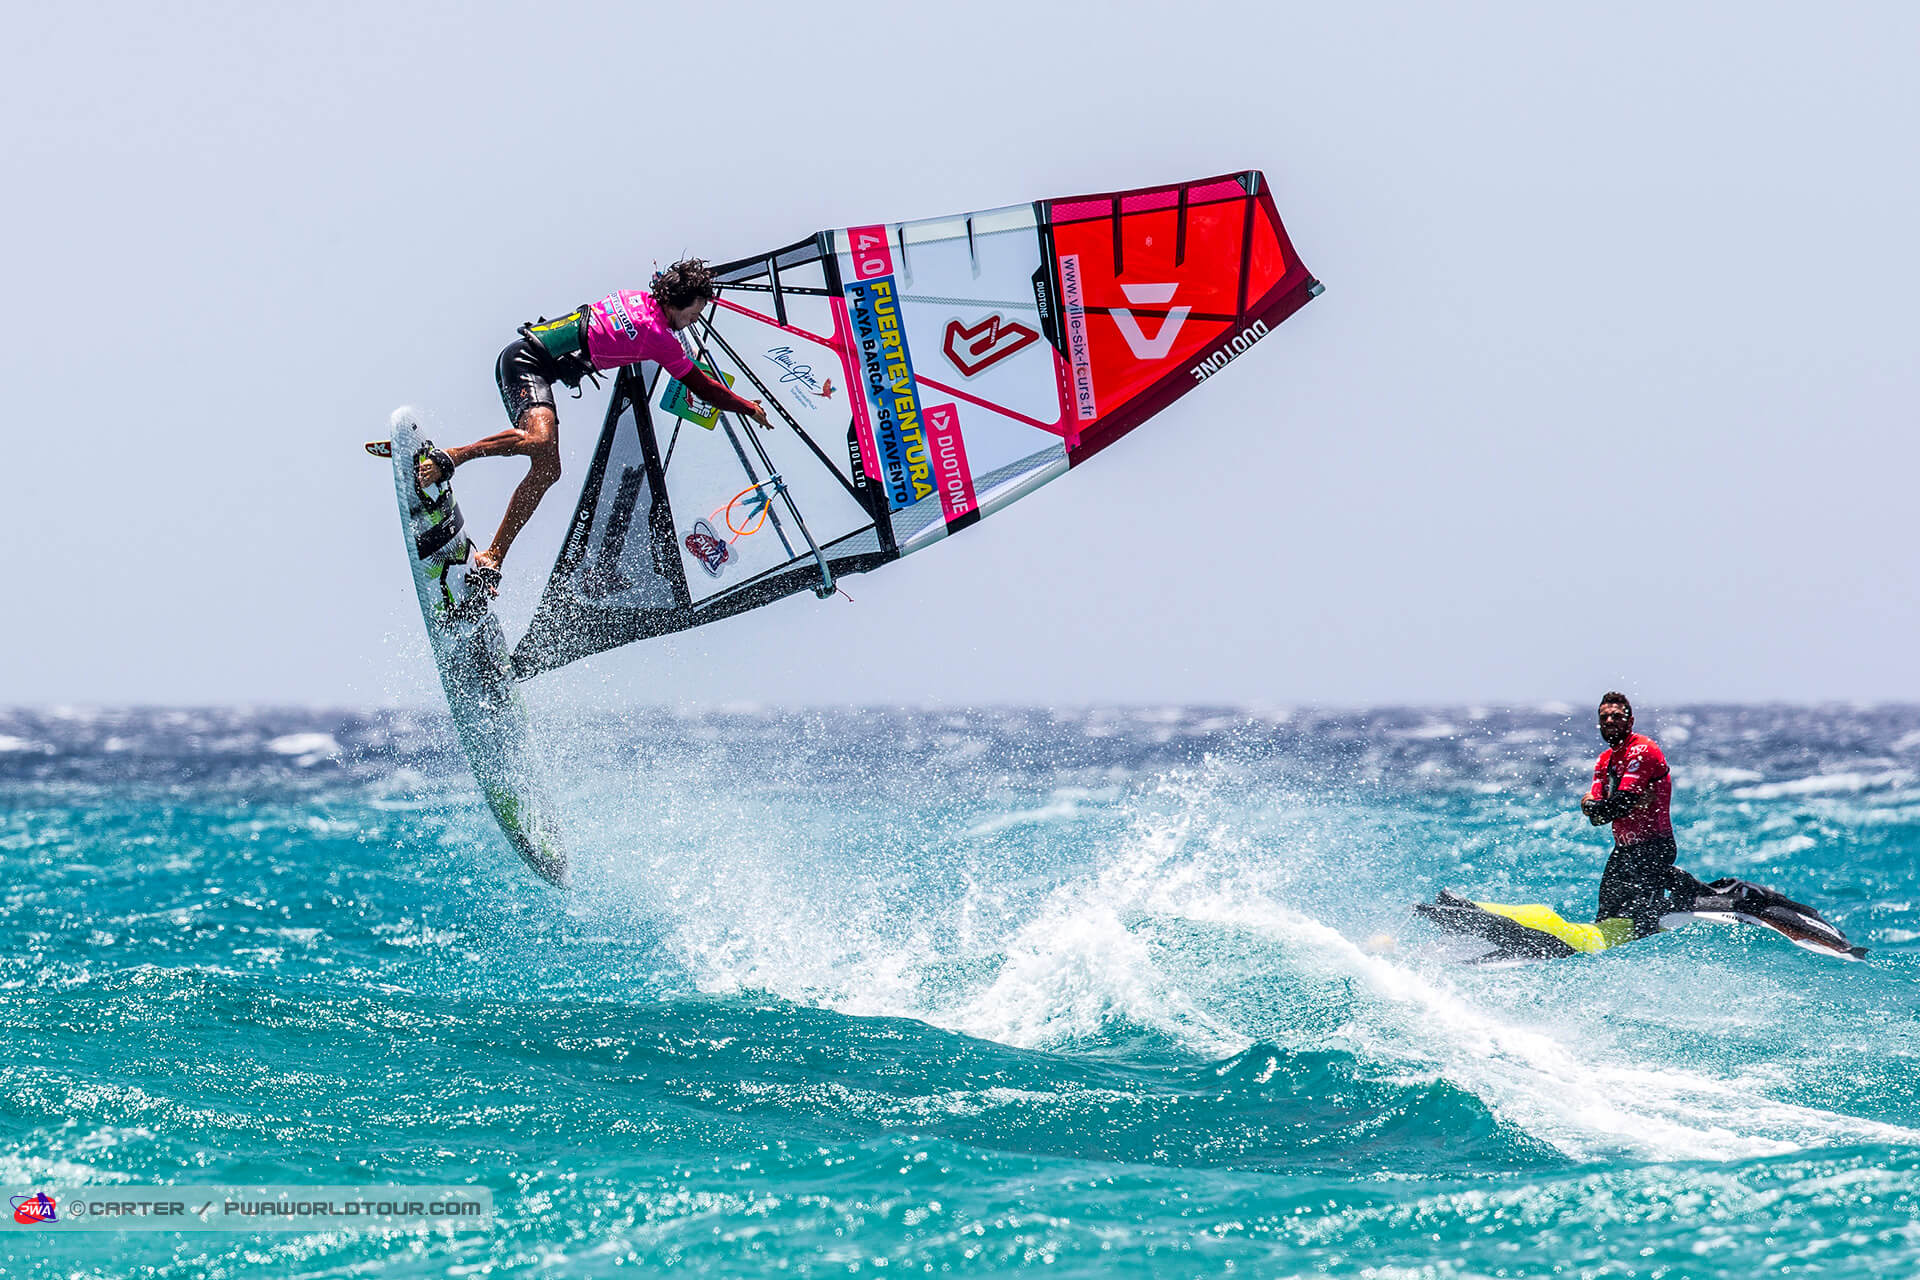 Duotone_Windsurfing_Team_Adrien_Bosson